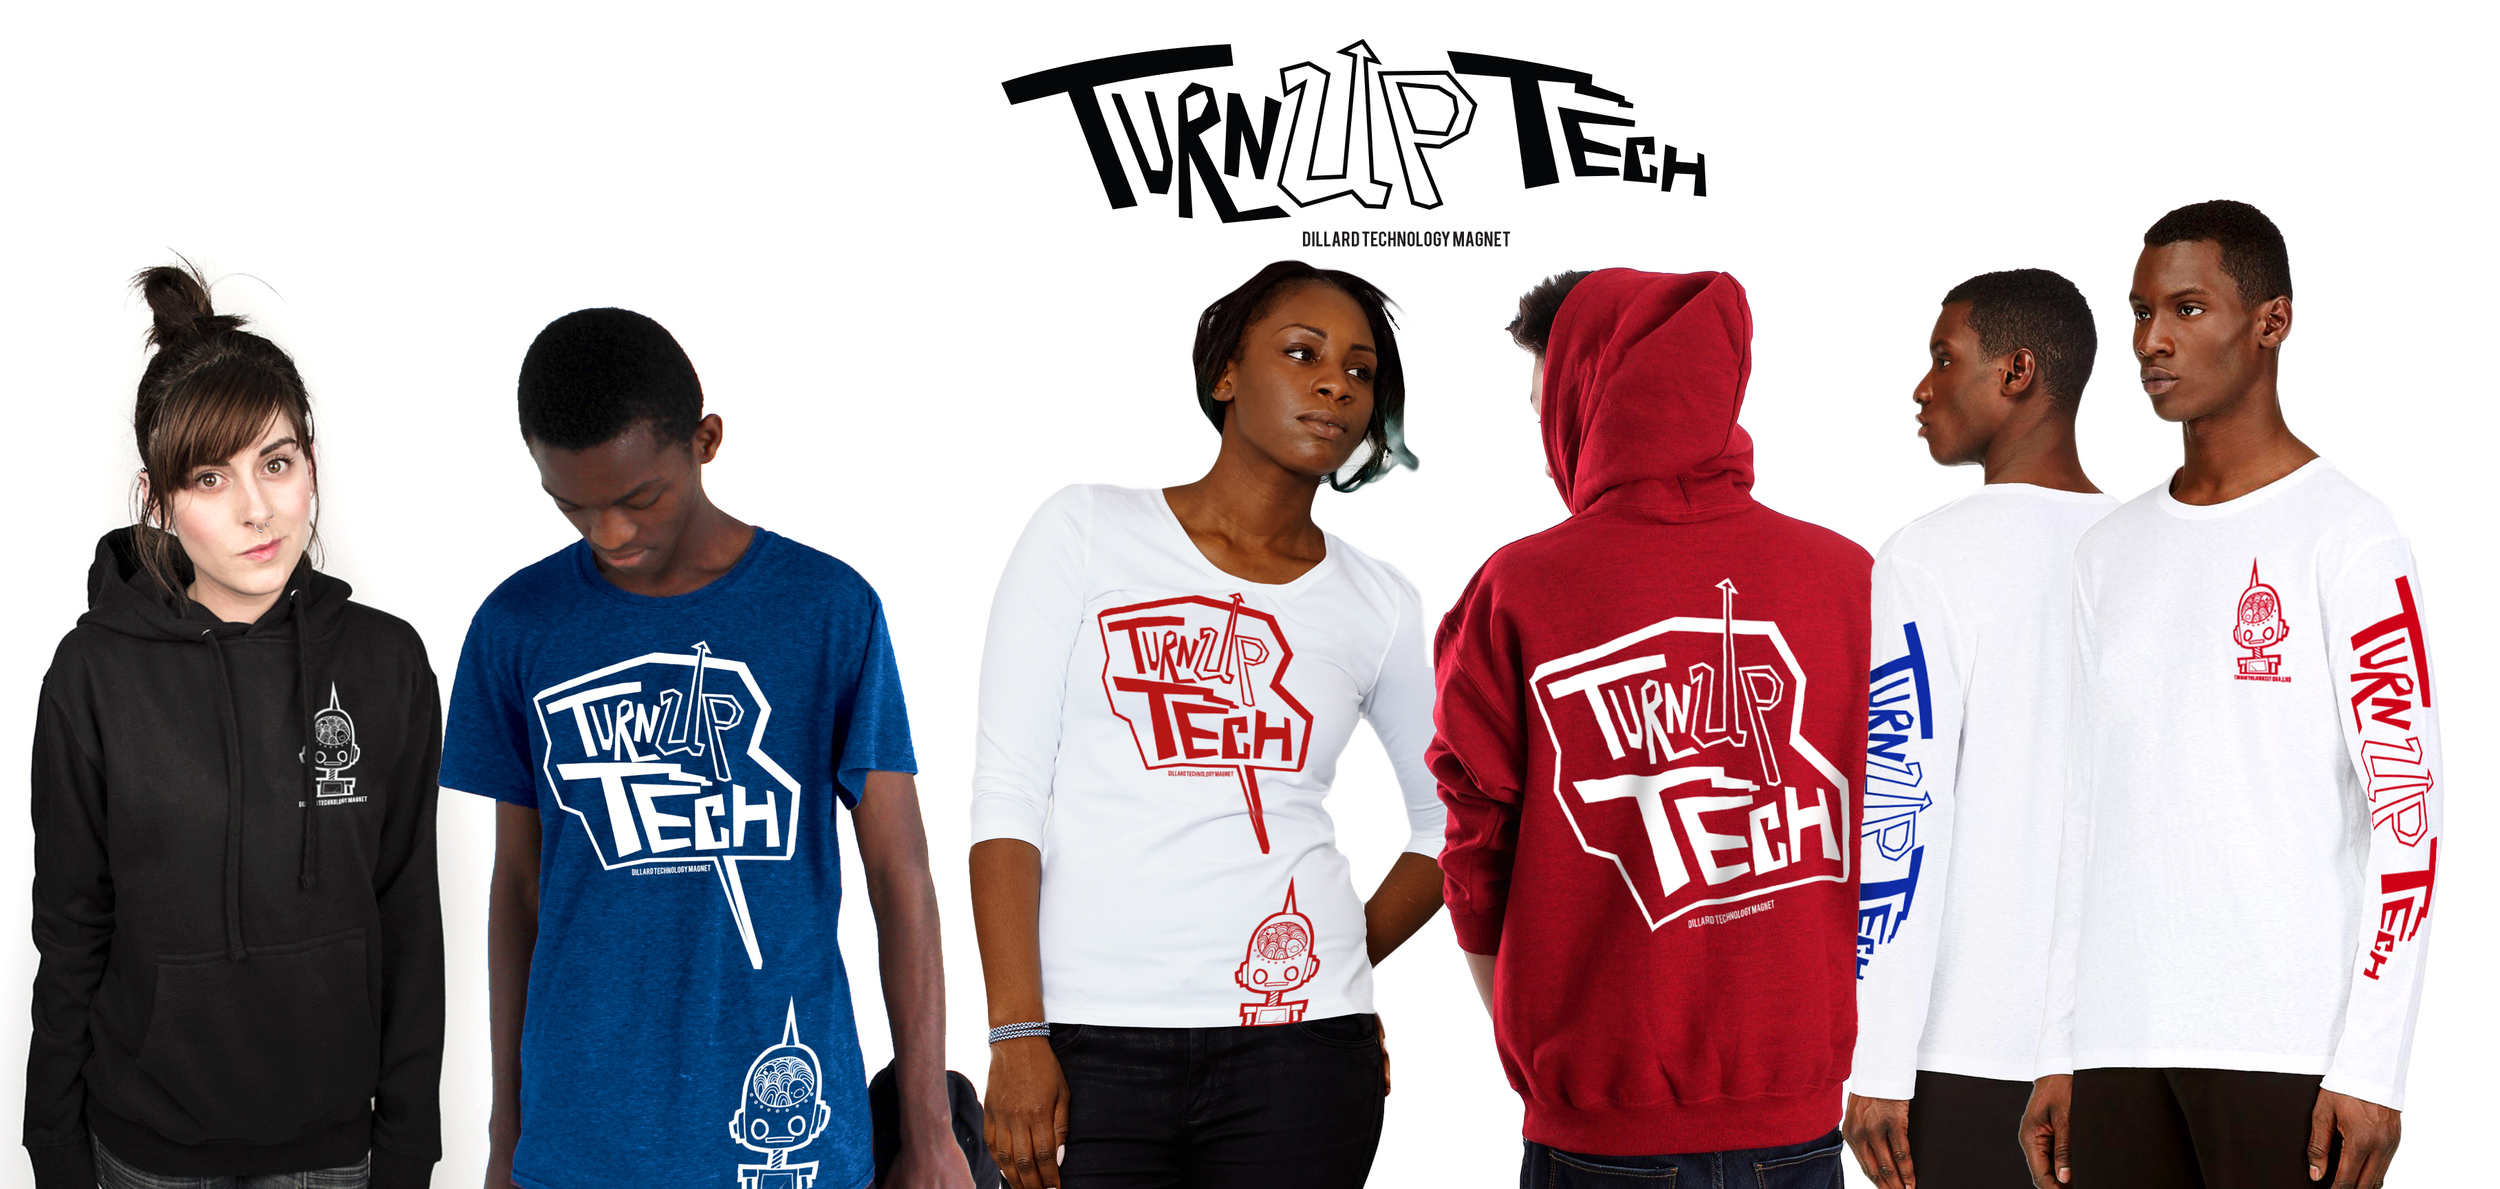 Turn Up Tech  Apparel  Briyana Butler, Designer    To orders yours, see Ms. Swanson